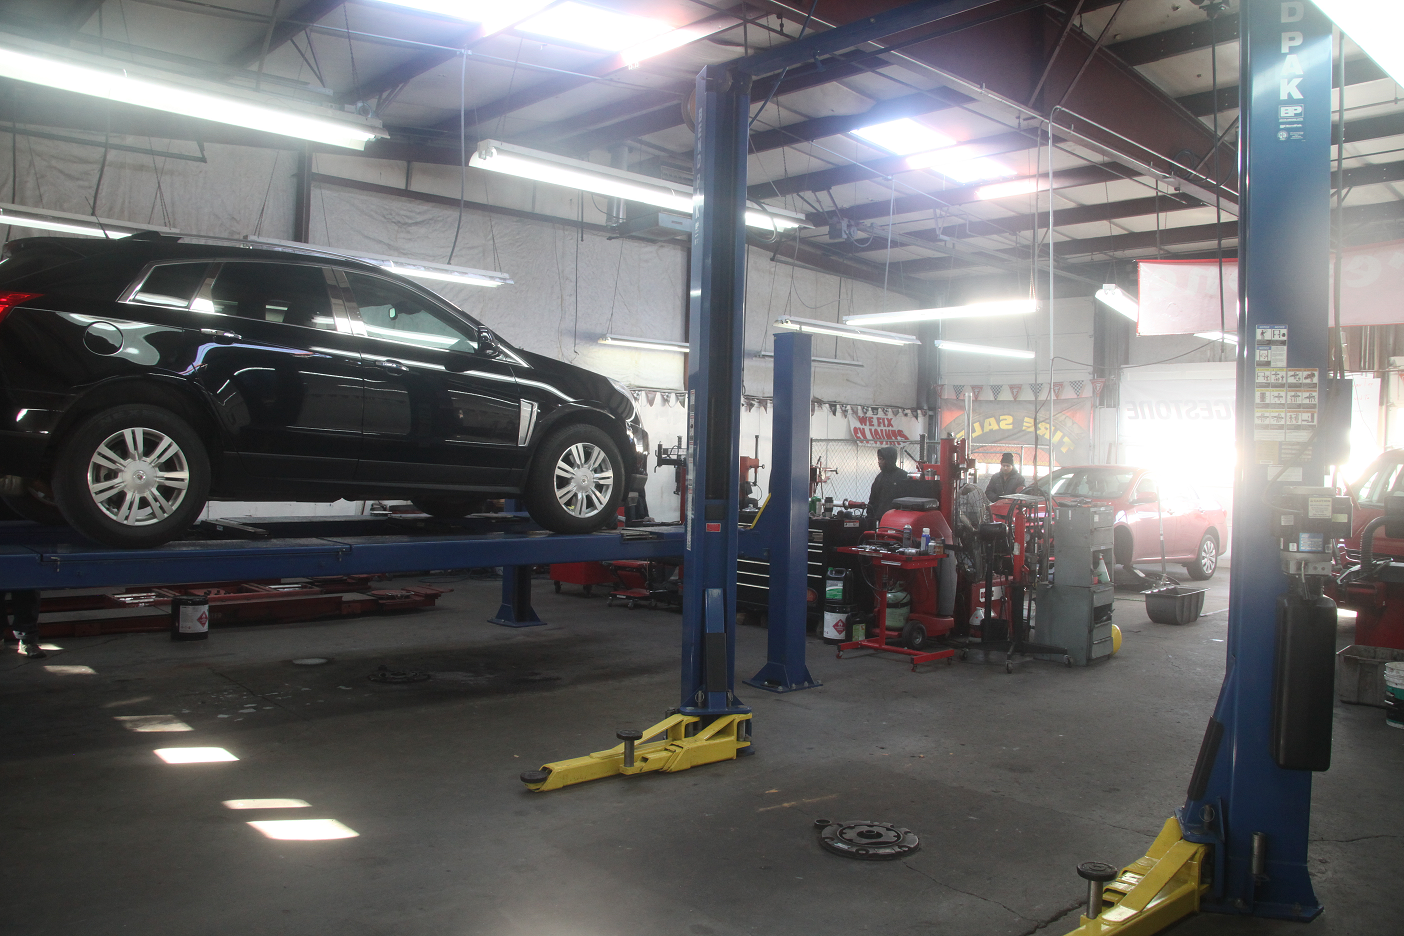 Auto repair shops near me in duluth georgia for Mercedes benz repair duluth ga